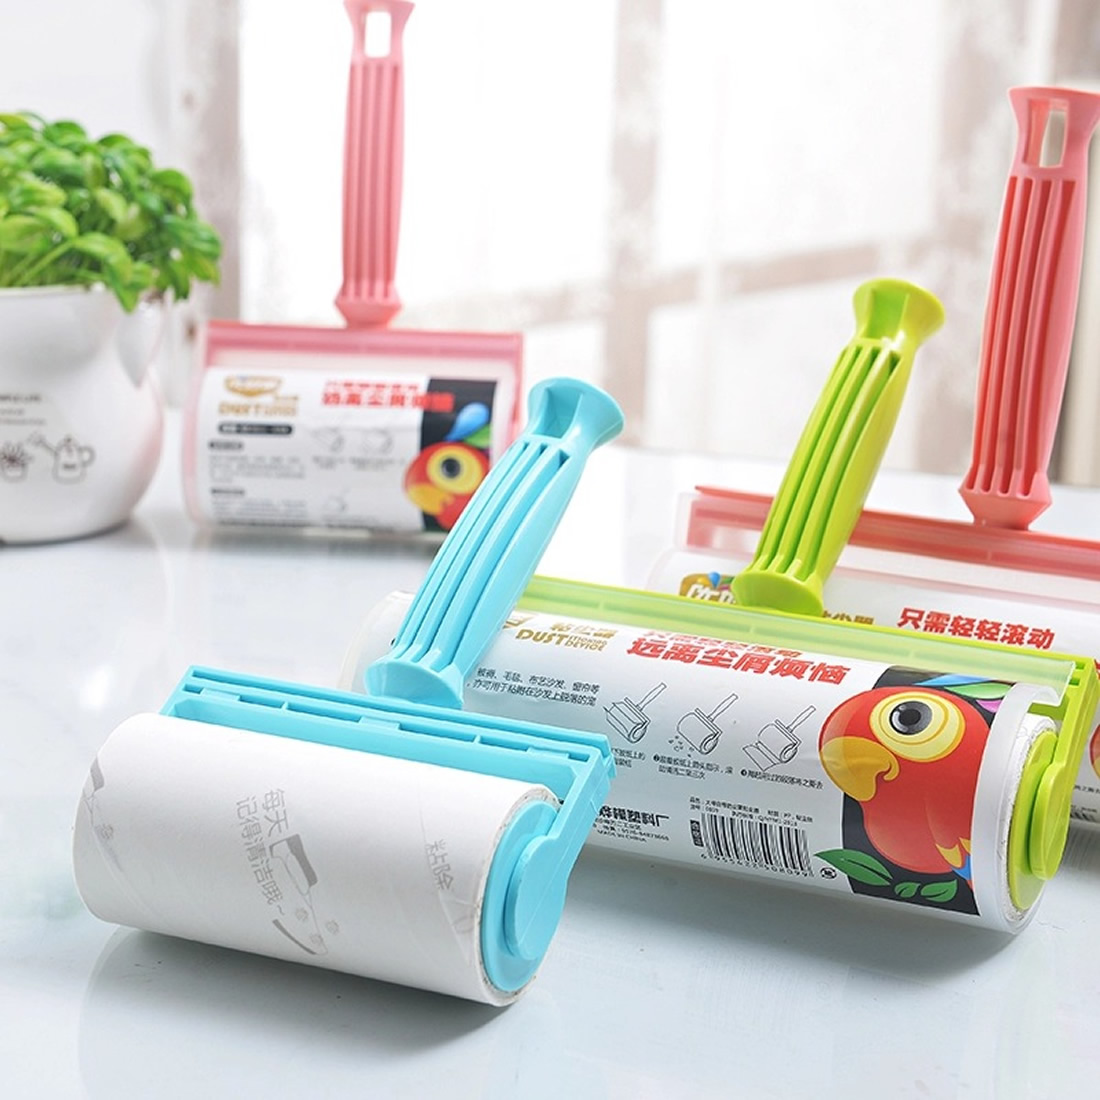 Hot Sale Clothing Lint Rollers Cleaning Sweater Sticky Hair Remover Brush Washable Carpet Bed Sheet Dust Brush Cleaning Tools